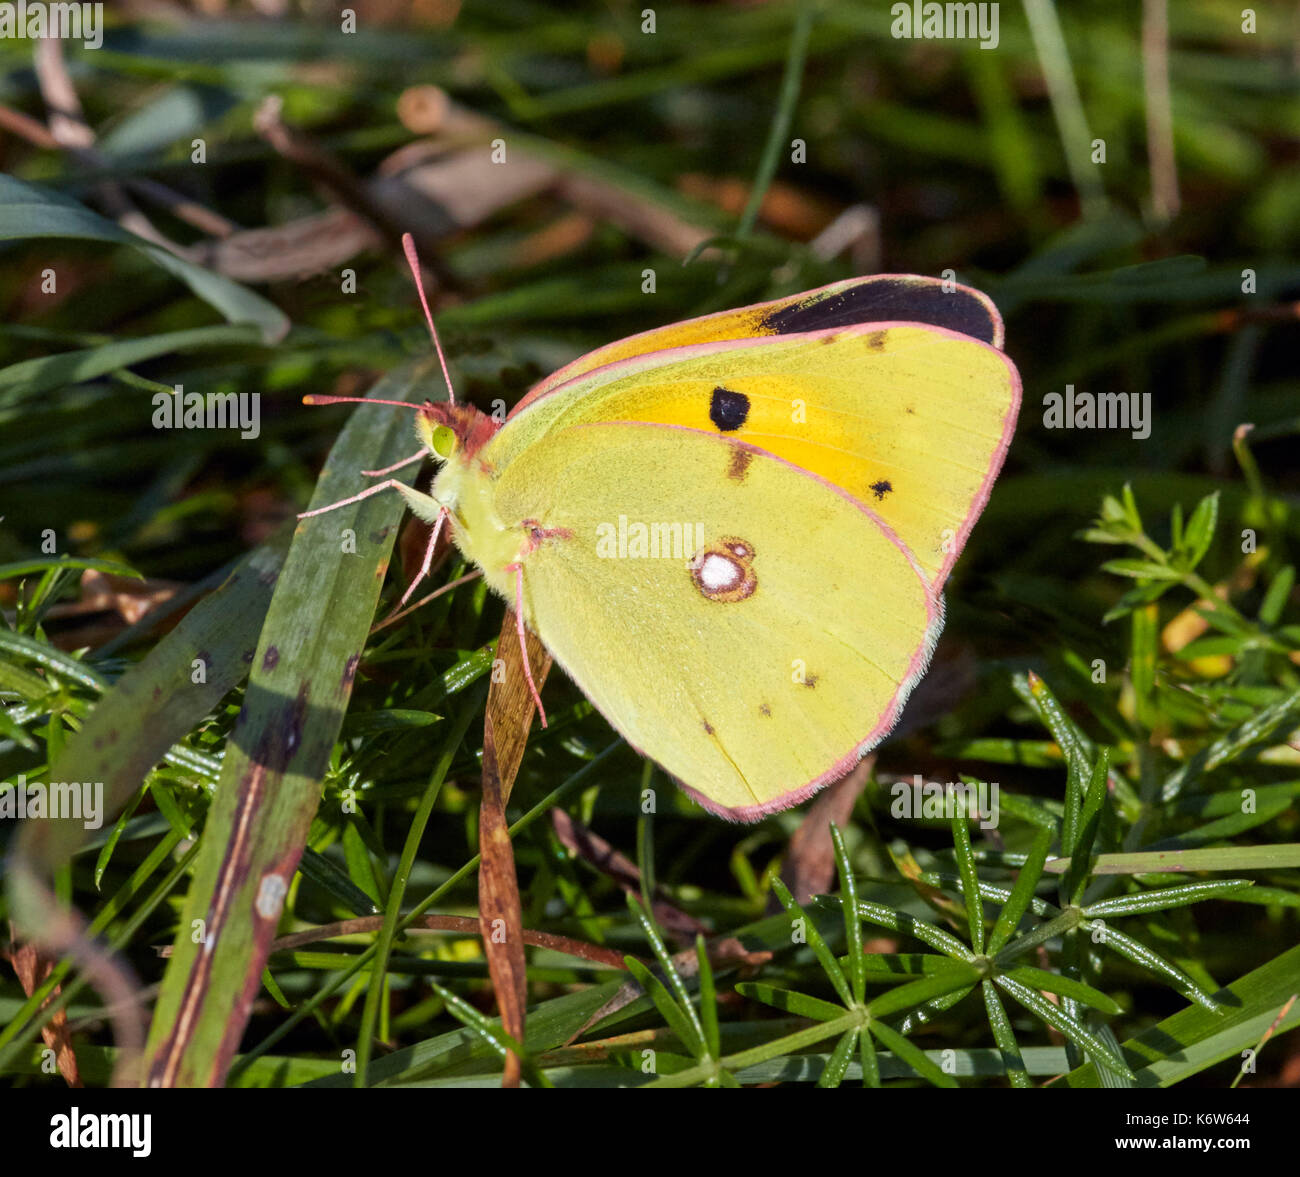 Clouded Yellow butterfly showing a glimpse of its upperside. Hurst Meadows, East Molesey, Surrey, UK. Stock Photo